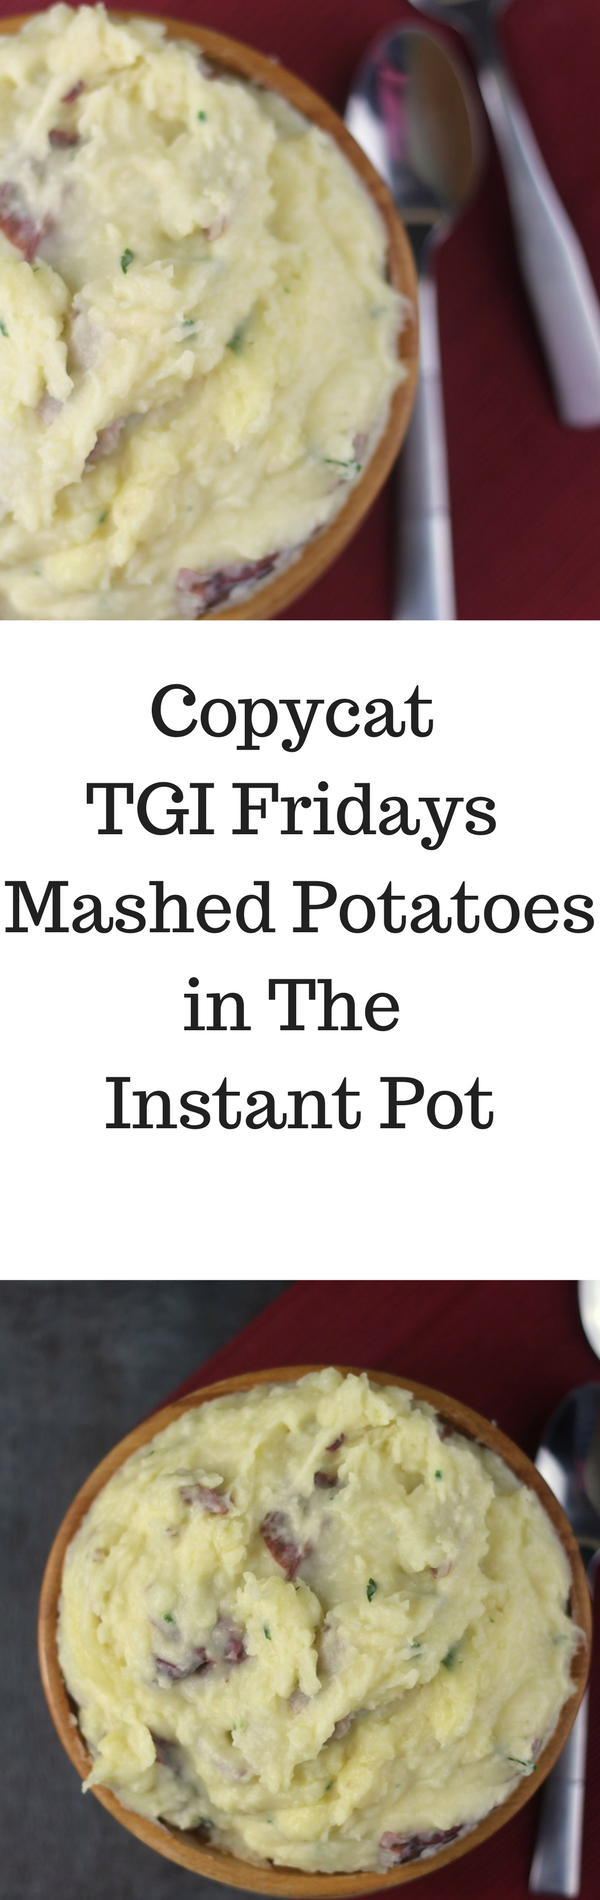 Copycat TGI Fridays Mashed Potatoes in The Instant Pot